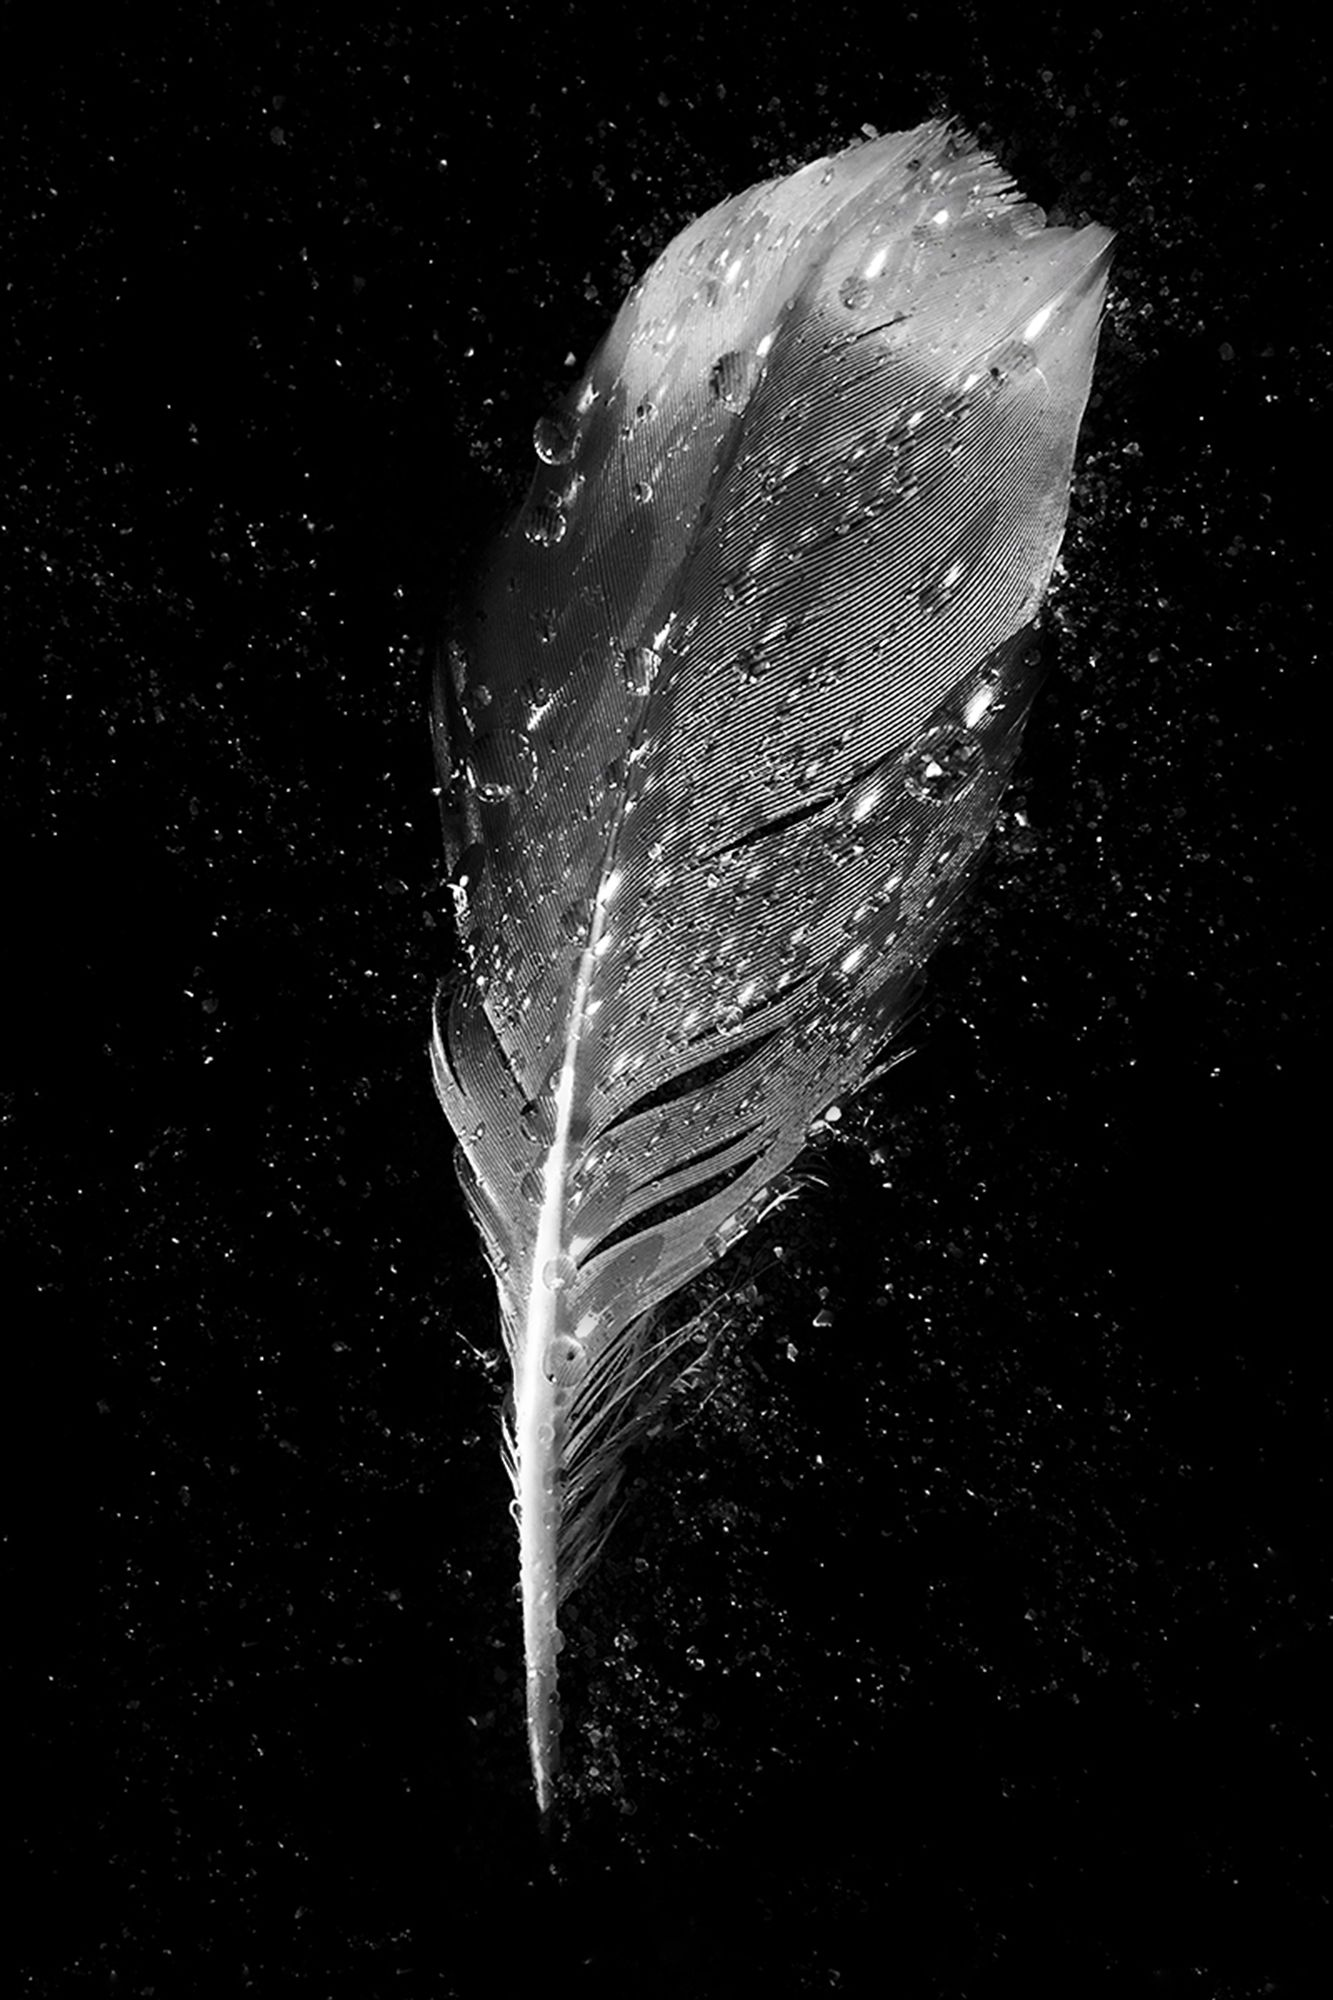 Tiny Immensity #11 - Wet Feather on Beach ©2018 L. Aviva Diamond